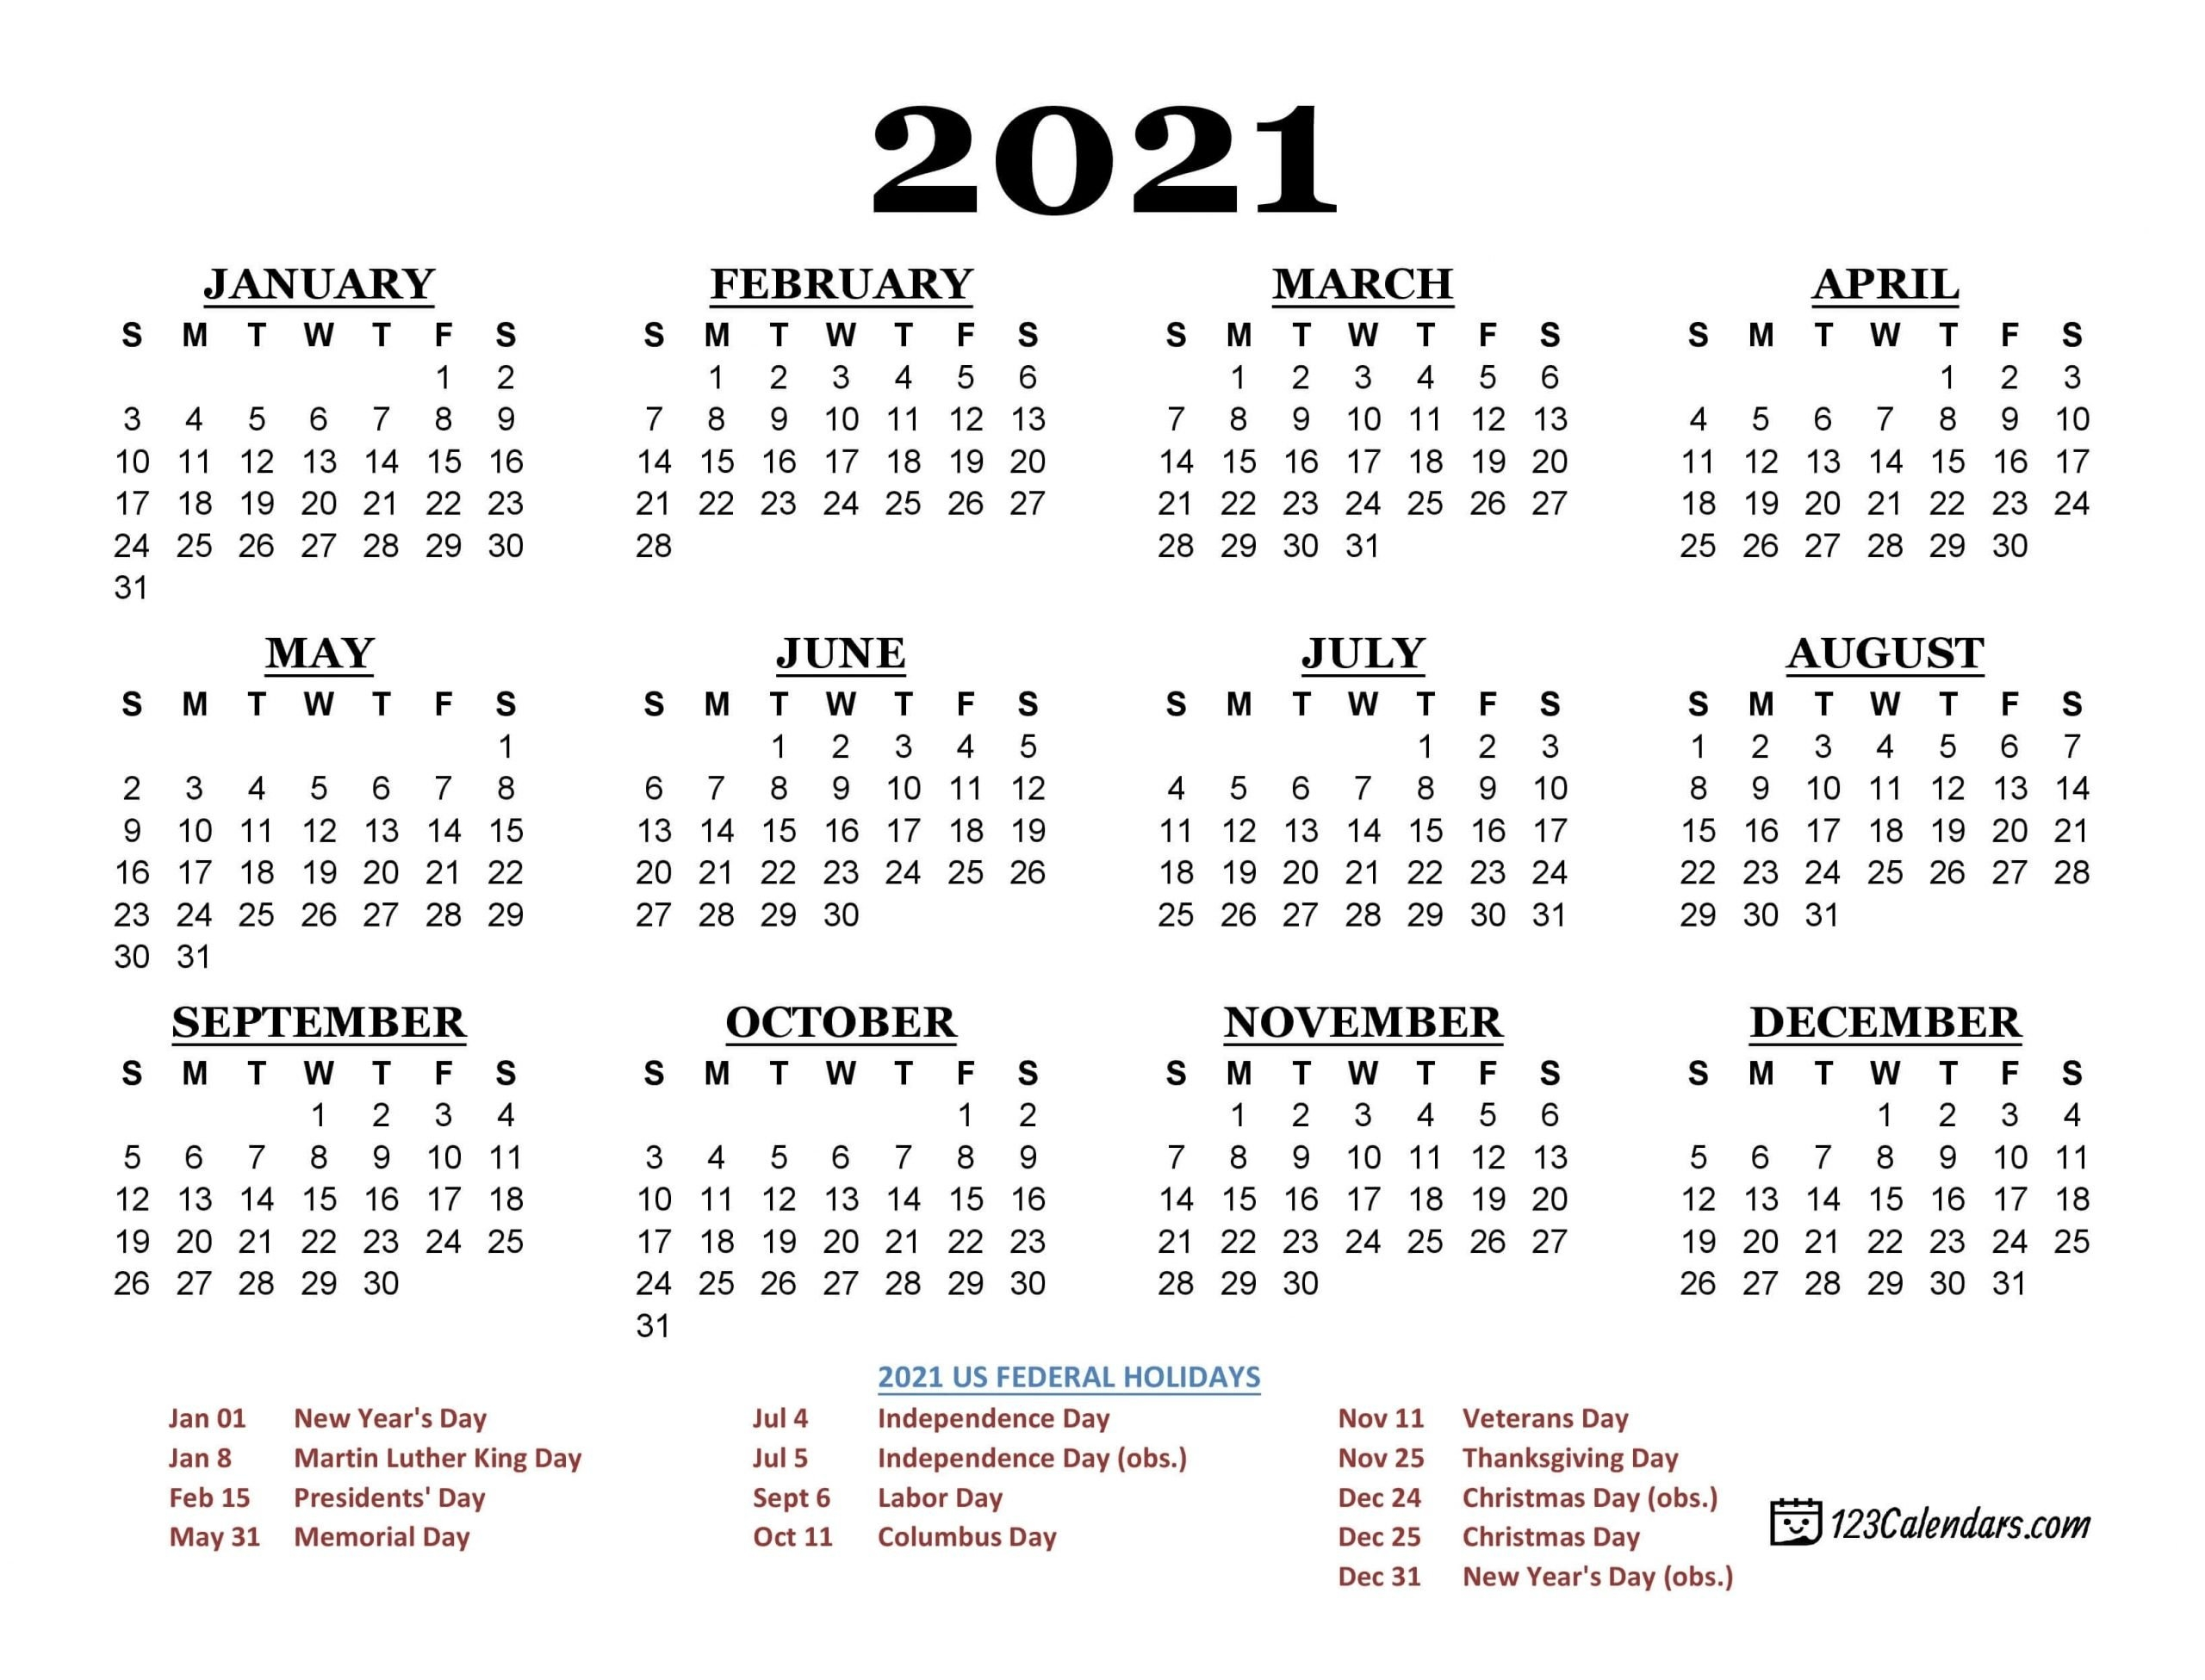 2021 Calendar You Can Wirte In | Calendar Template 2021 throughout Free Printable Monthly Calendar 2021 With Lines